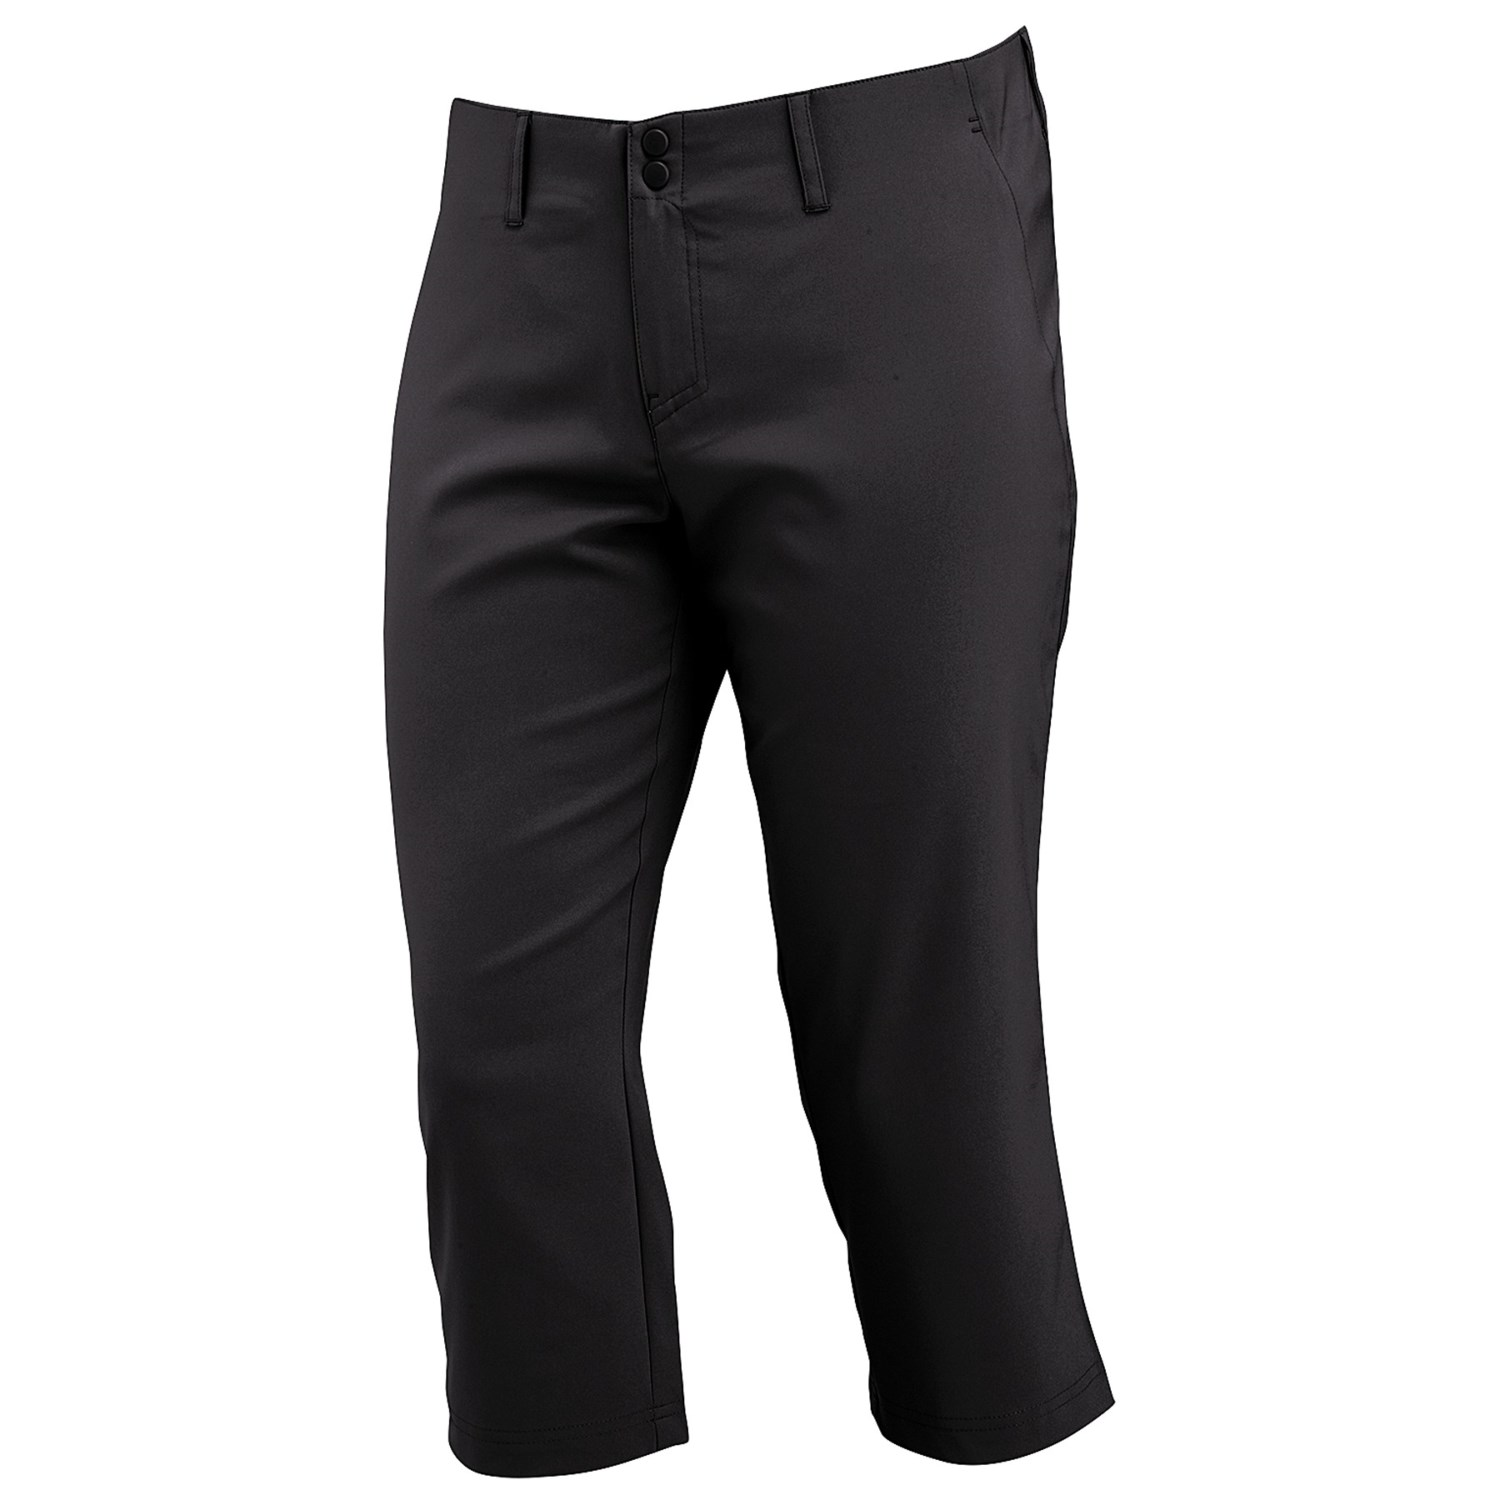 Alpine Design Clothing Capri Merrell Newblay Crop Pants